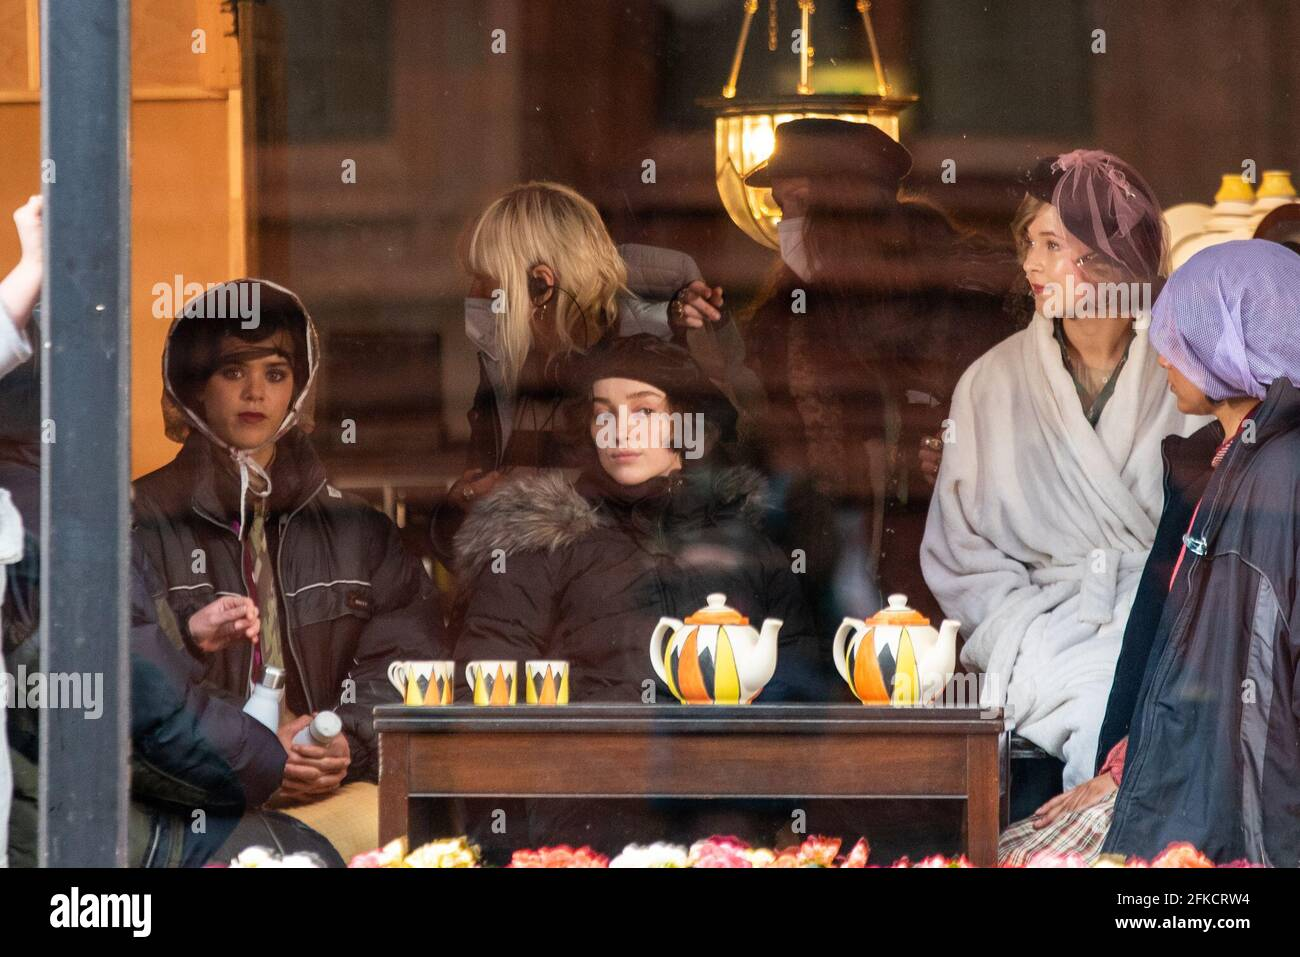 Birmingham, UK. 30th April 2021: Star of Netflix series Bridgerton, Phoebe Dynevor, was today seen on set of upcoming drama series for Sky, The Colour Room. Credit: Ryan Underwood / Alamy Live News Stock Photo